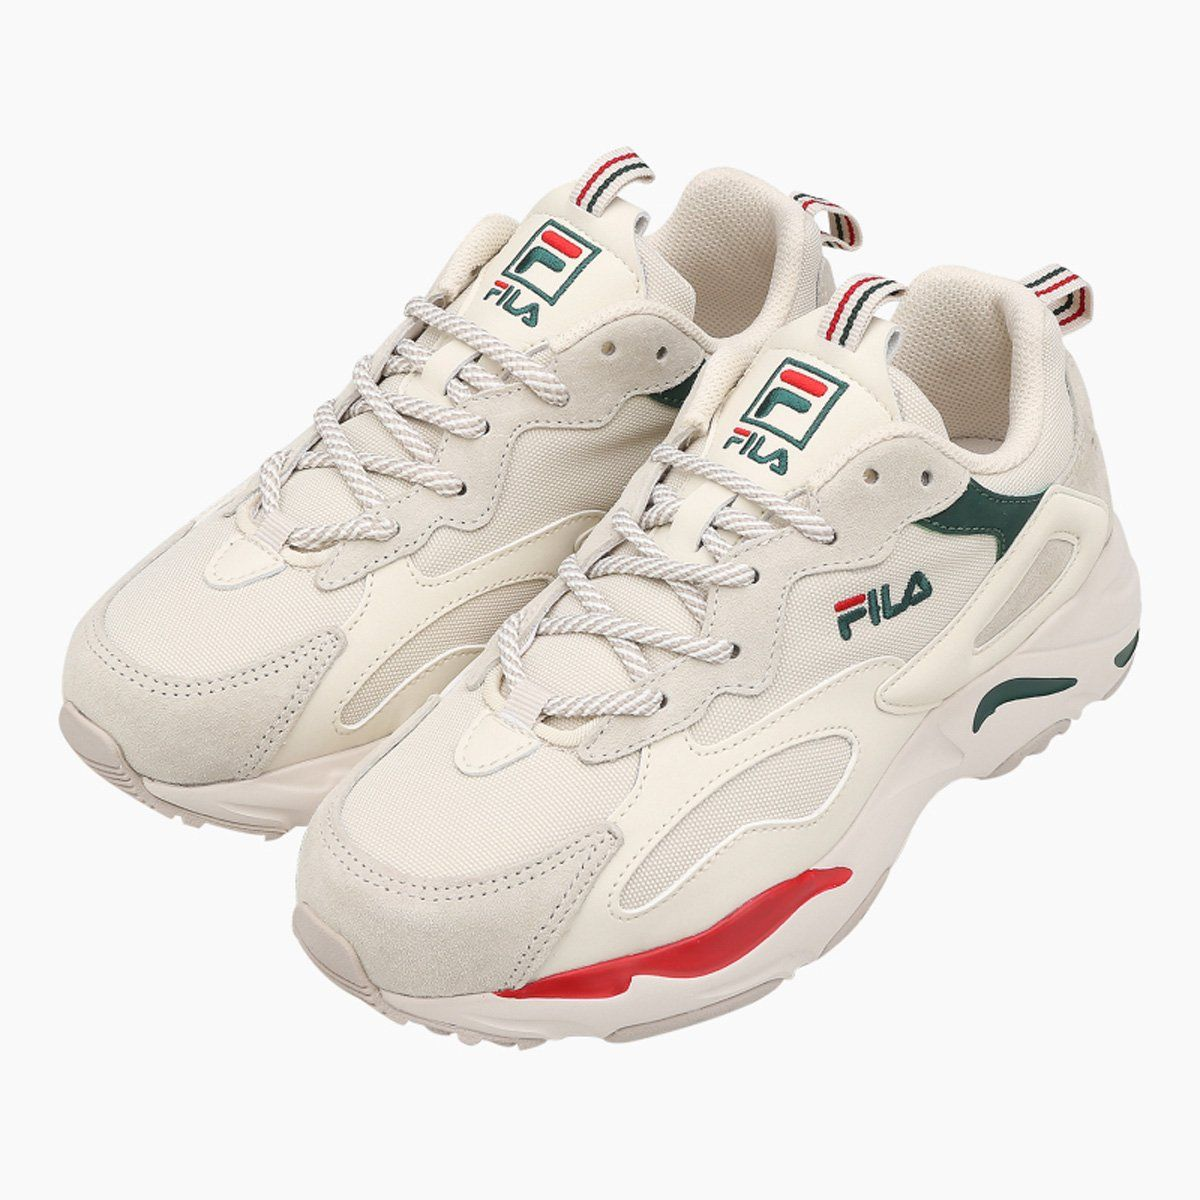 bts fila shoes